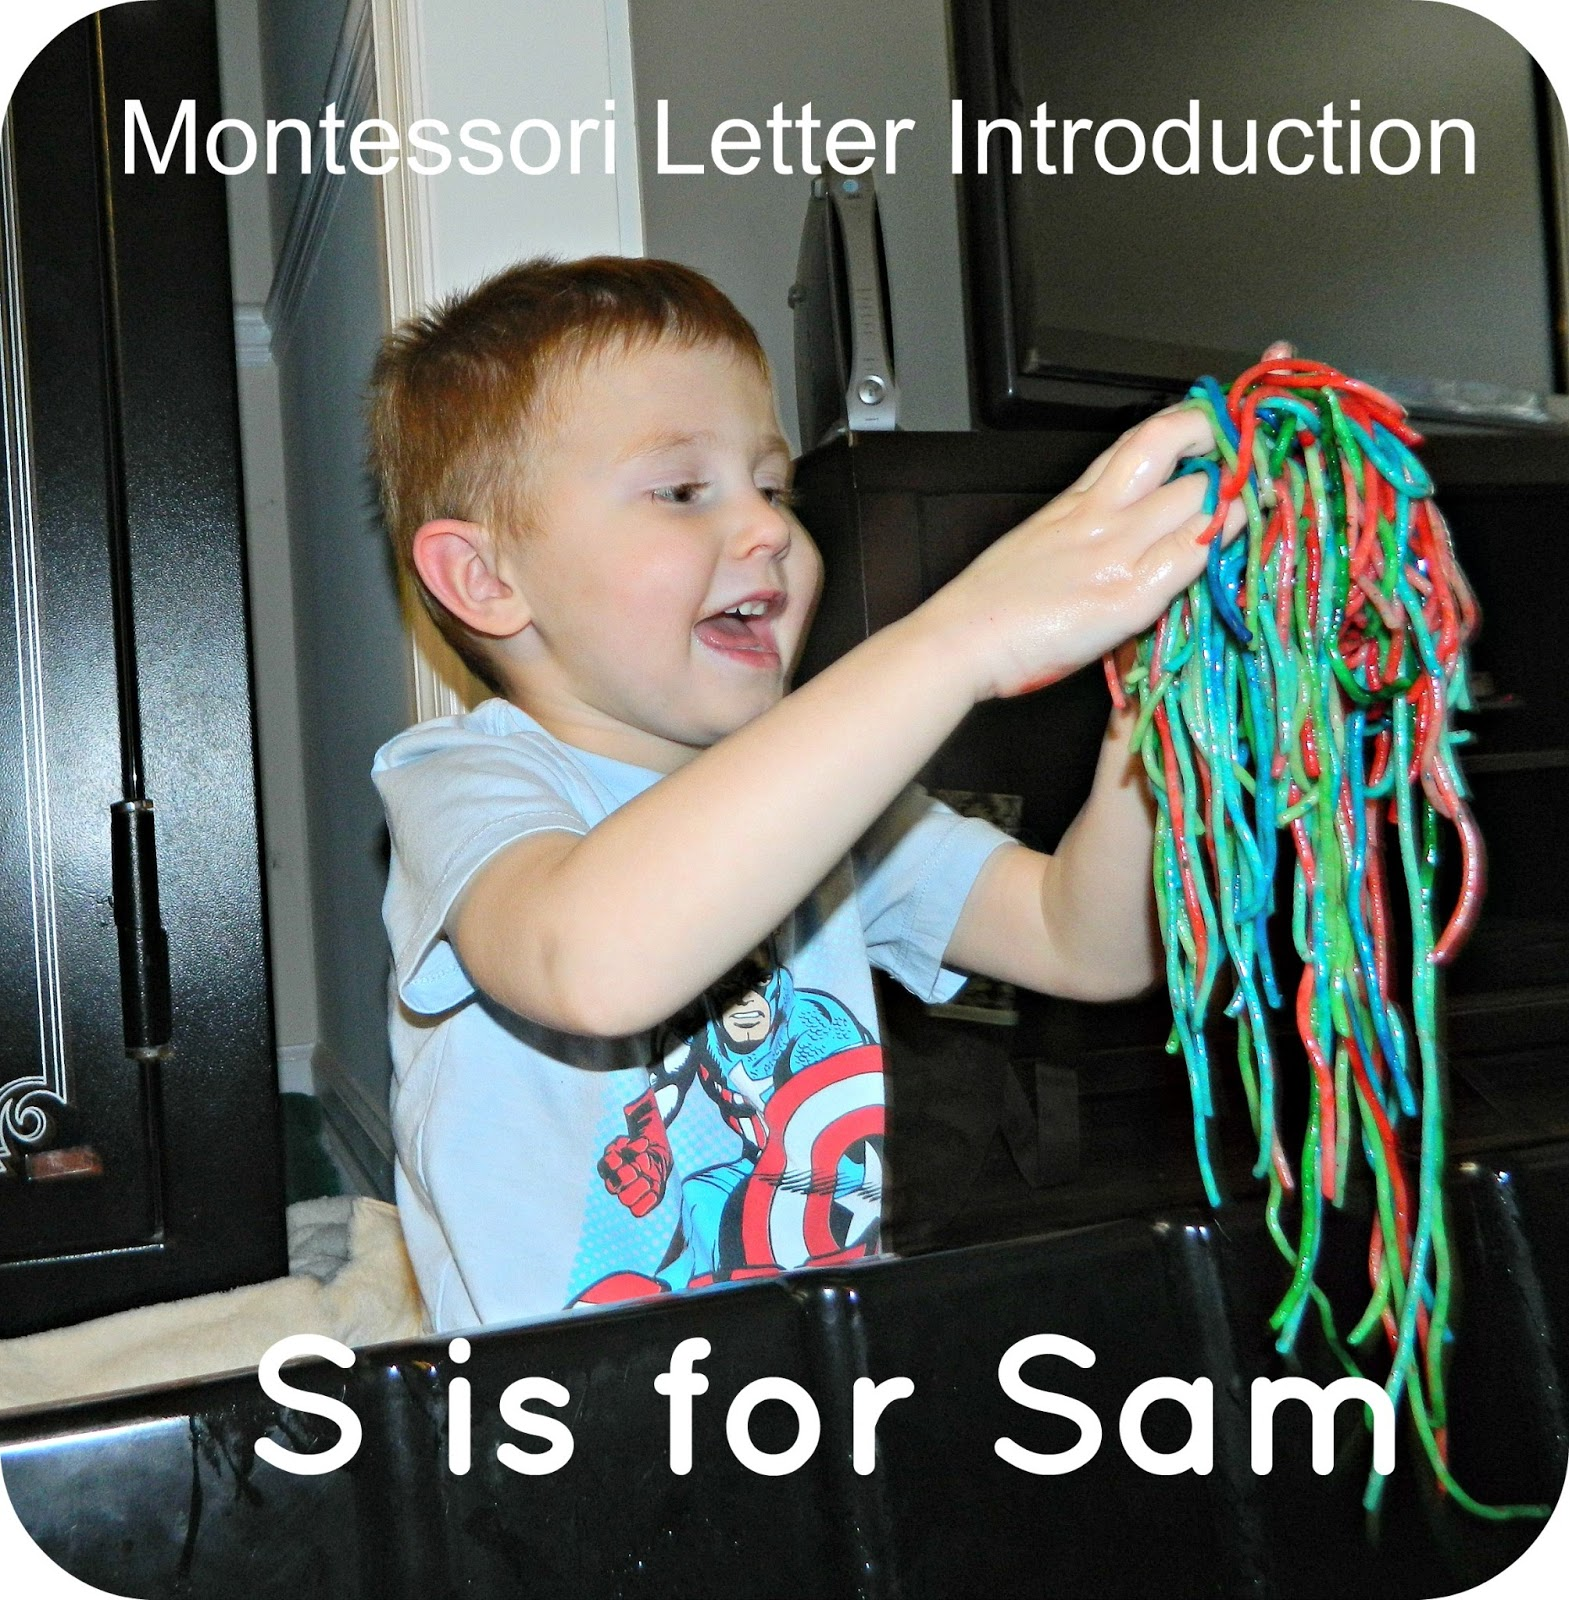 Montessori Letter Introduction: S is for Sam